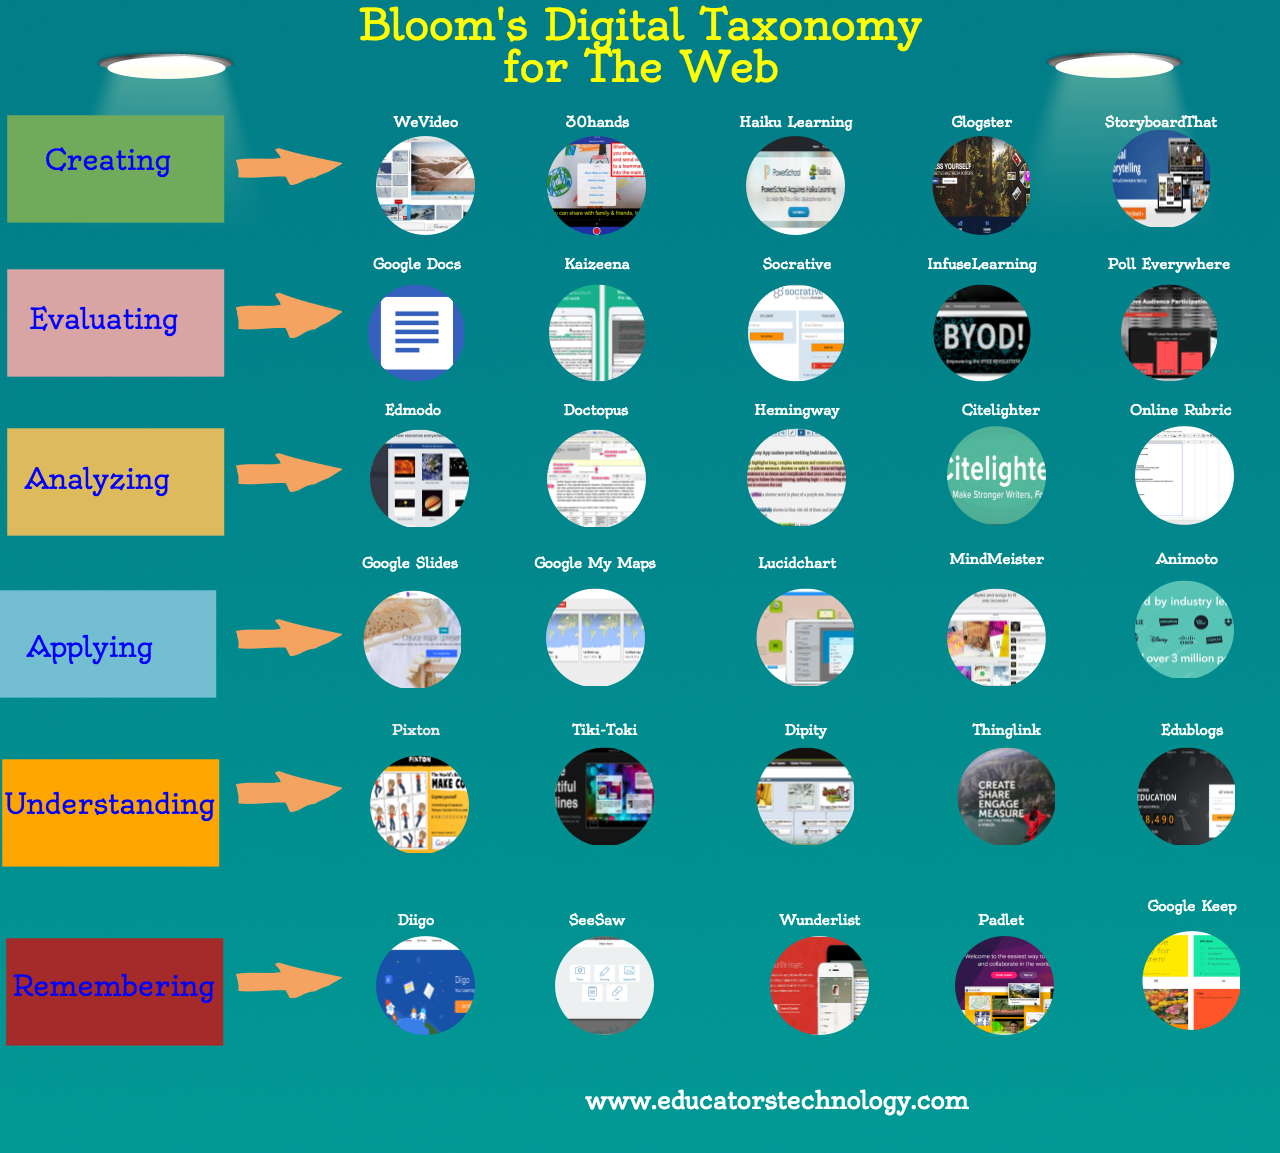 The Web Version of Bloom's Digital Taxonomy